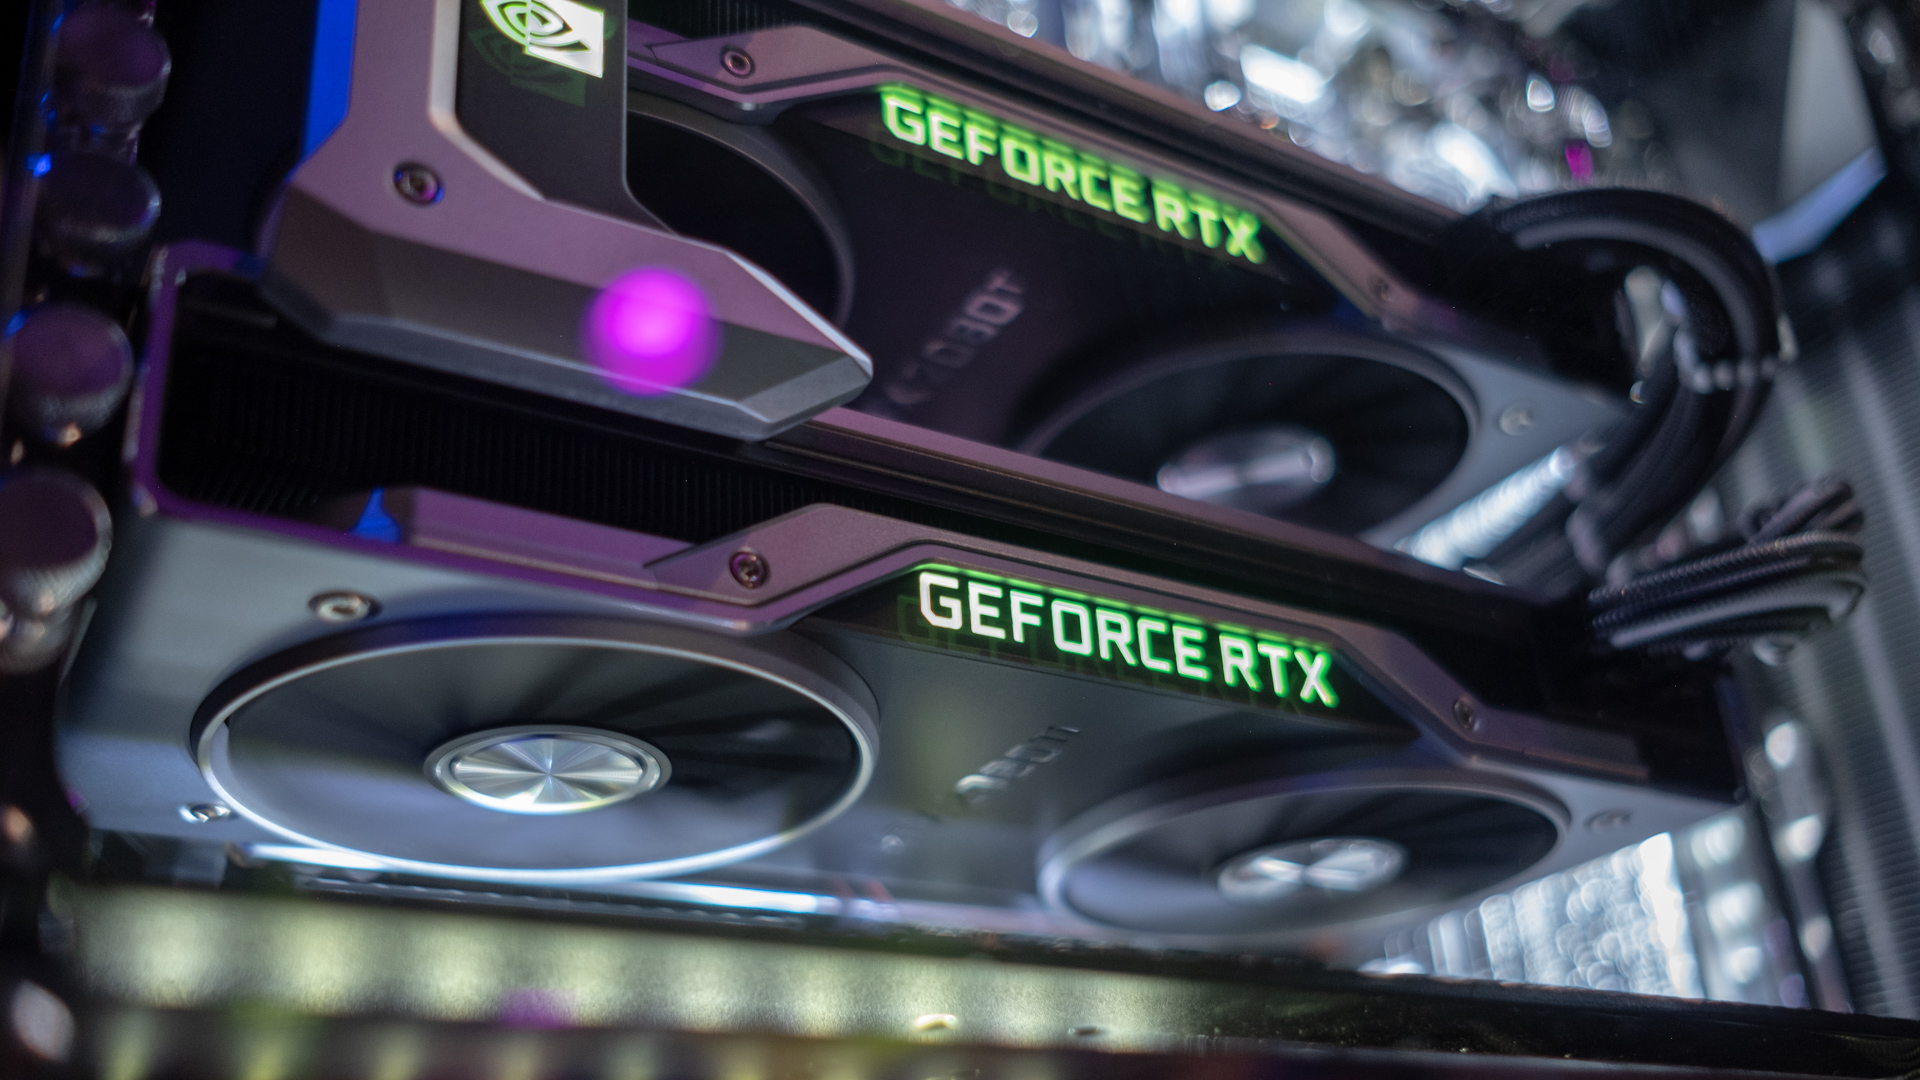 Benchmarks confirm Nvidia GeForce RTX 2080 Ti and RTX 2080 are for